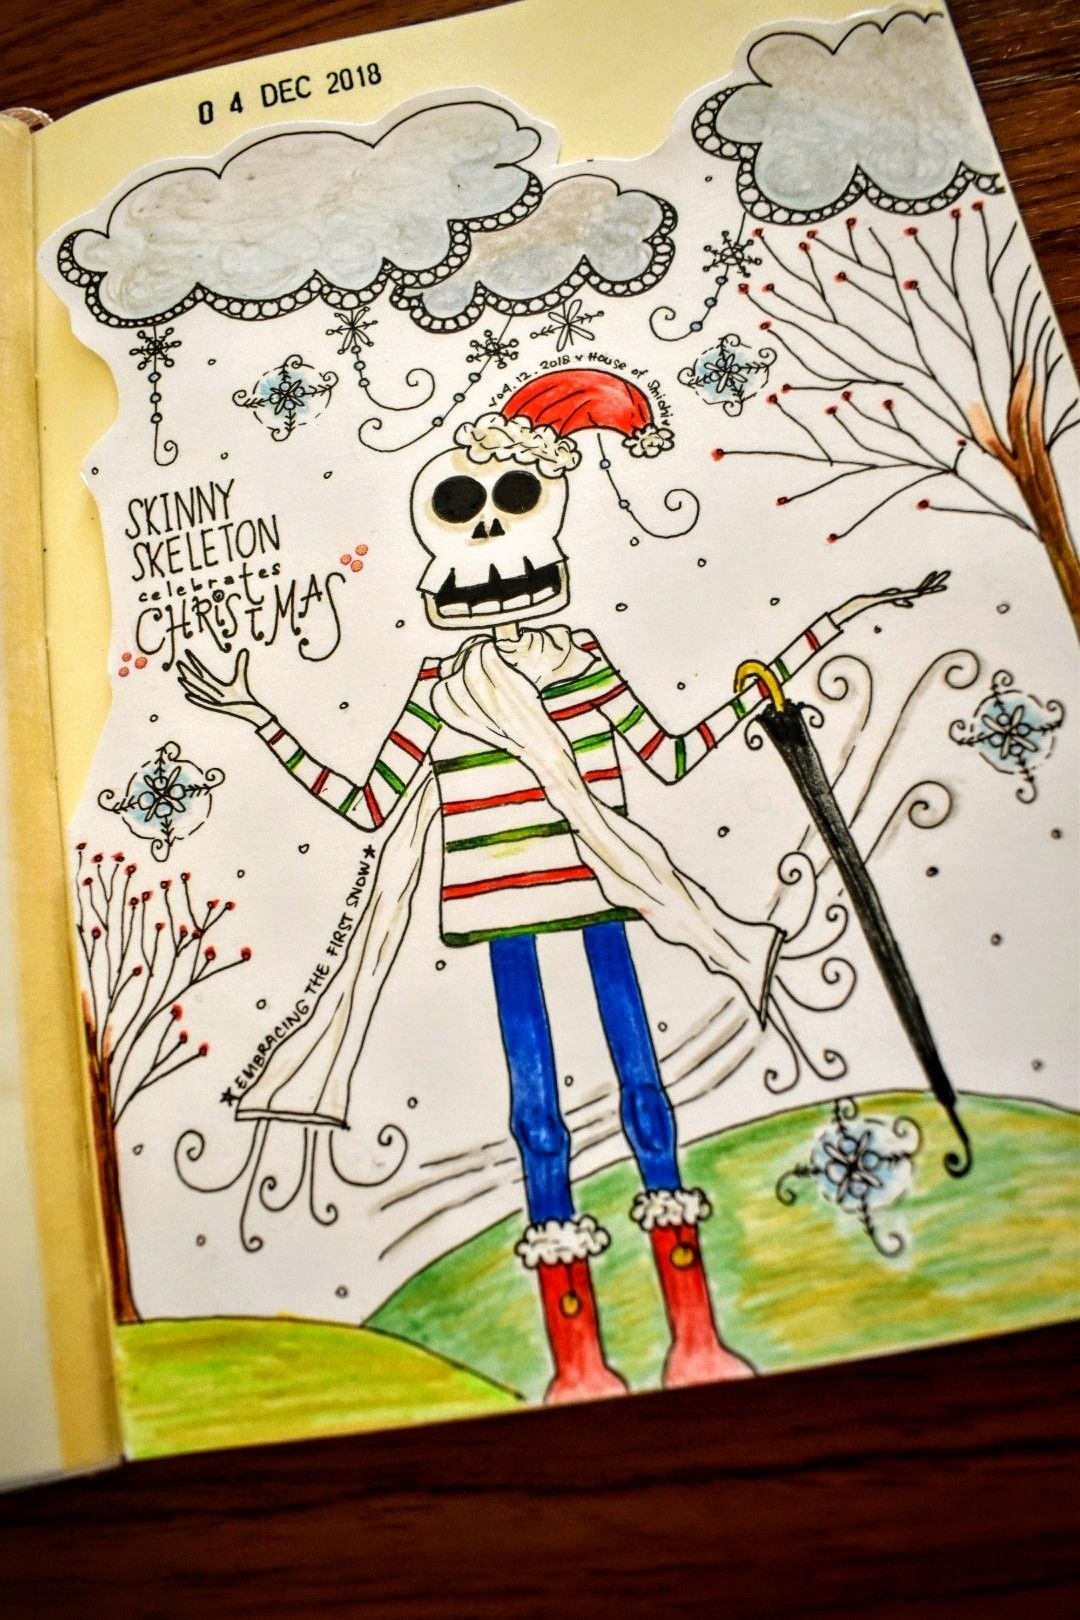 Skinny Skeleton is embracing the first snow. Created by House of Smichi.